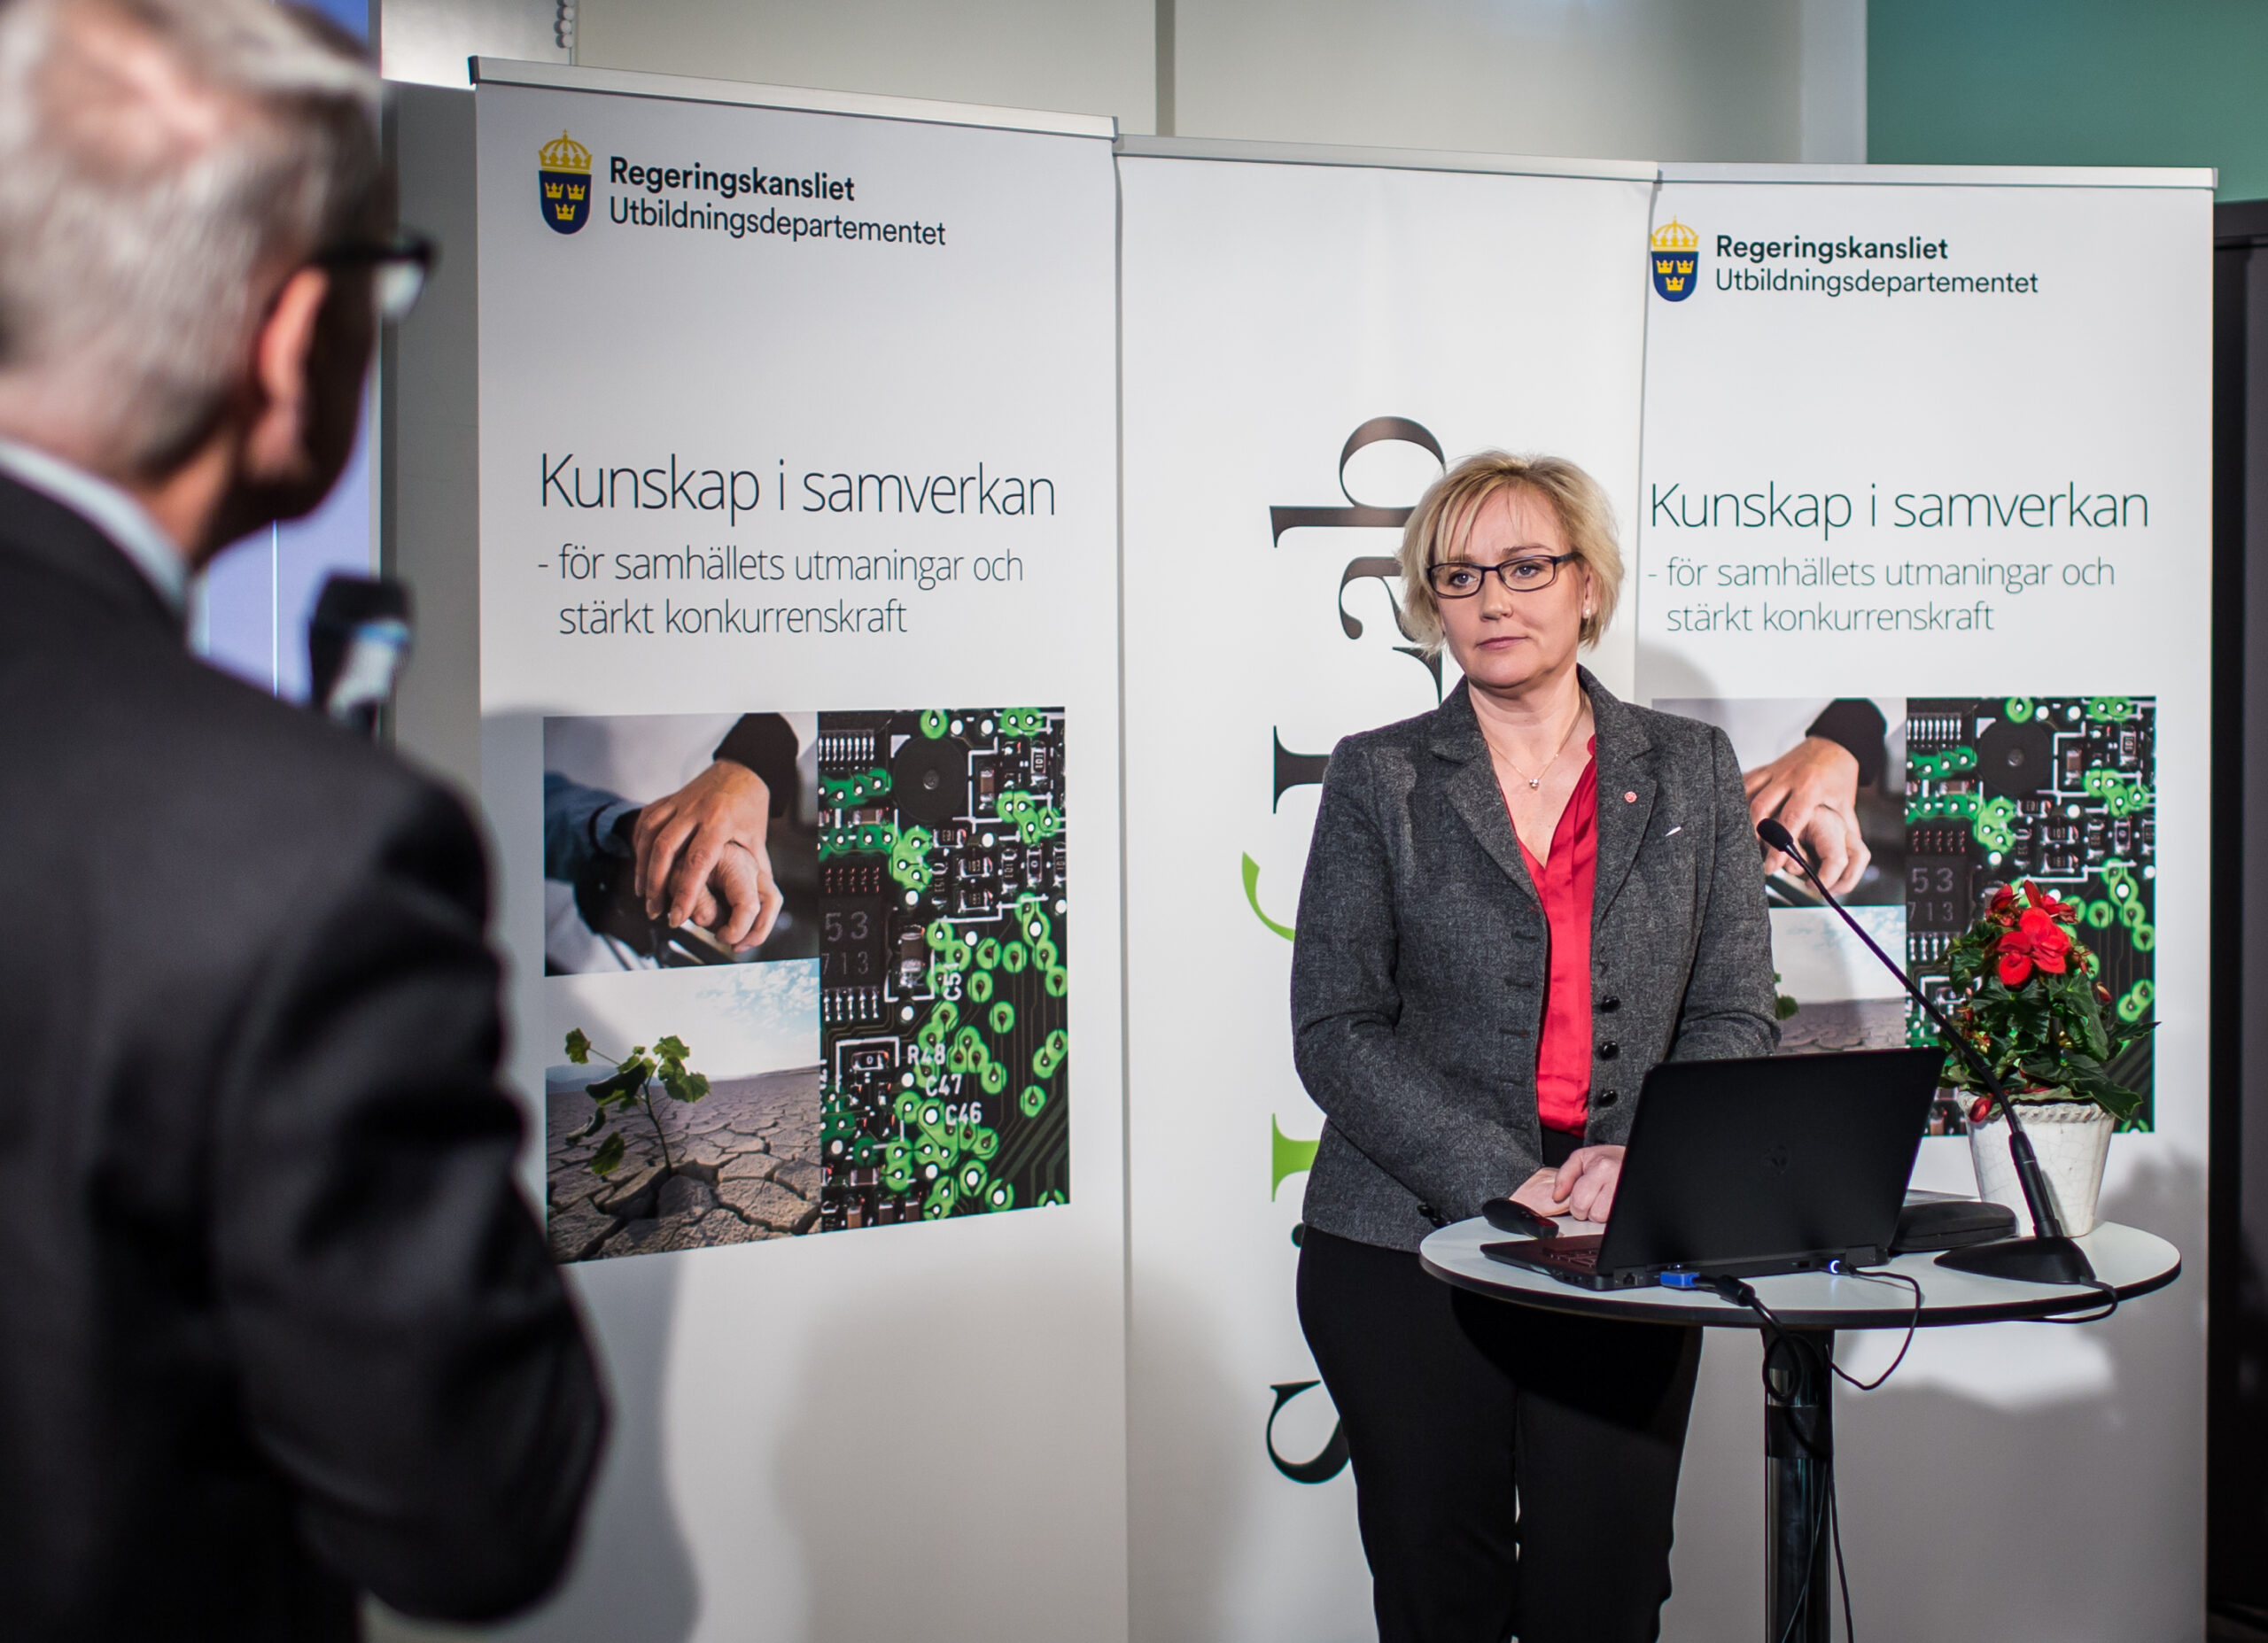 Helene Hellmark Knutsson presented the research bill at SciLifeLab in Solna.